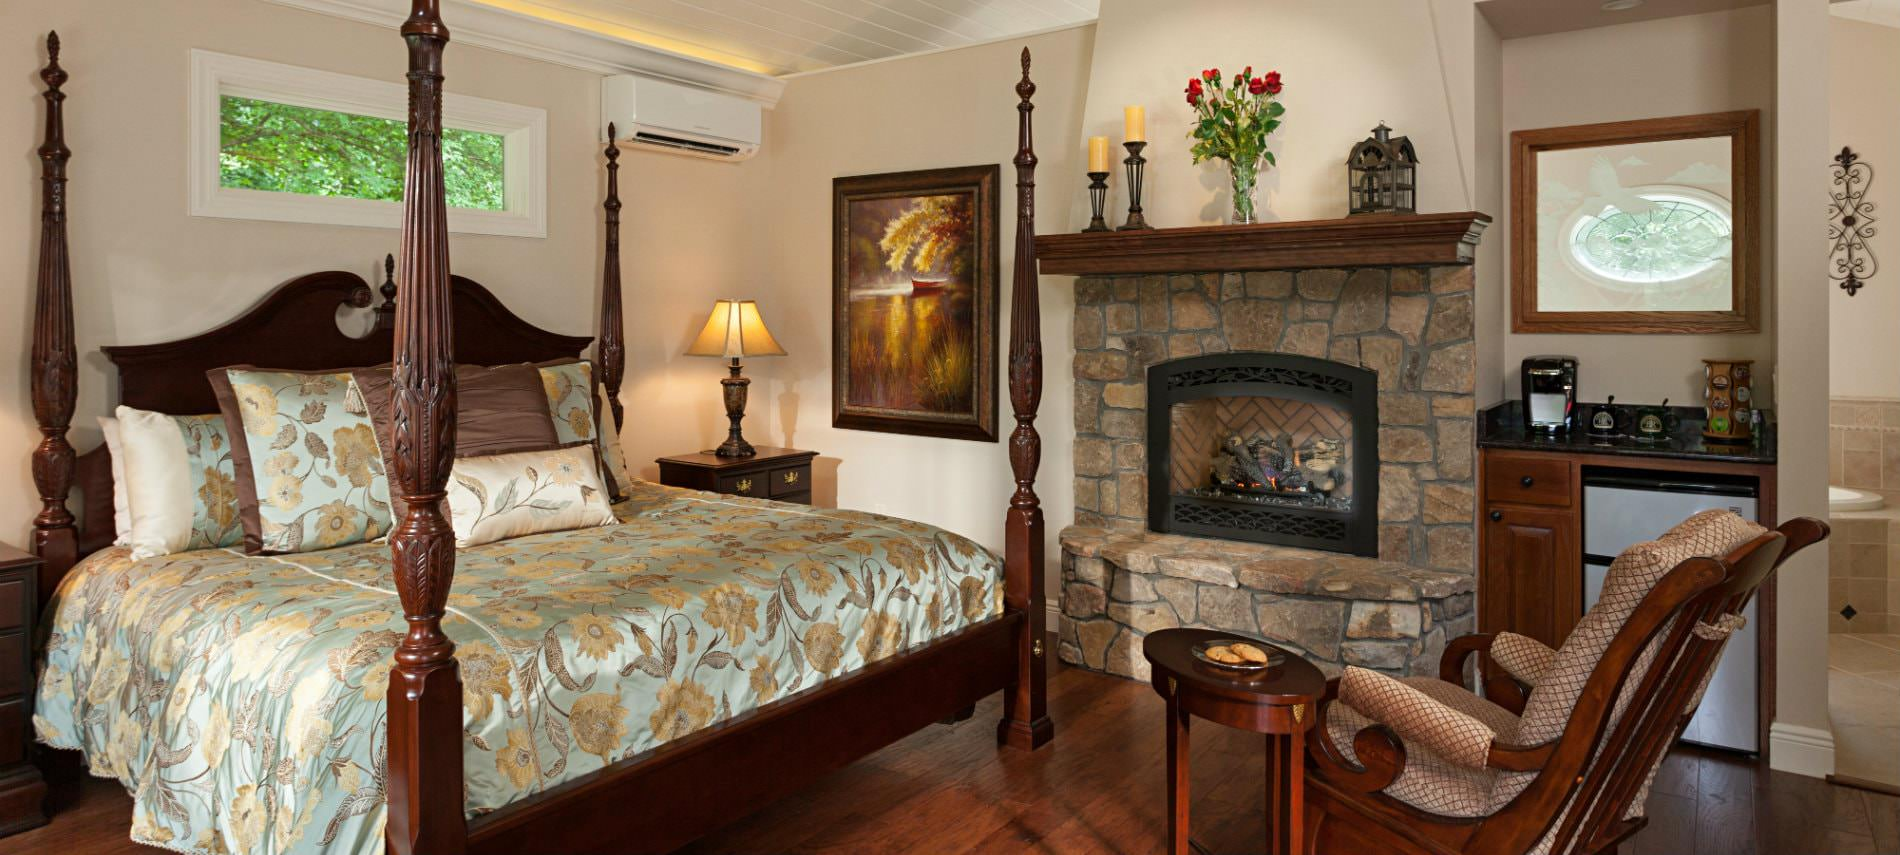 Elegant beige guest room with wood floors, stone fireplace, elegant four poster bed, beverage center and rocking chair